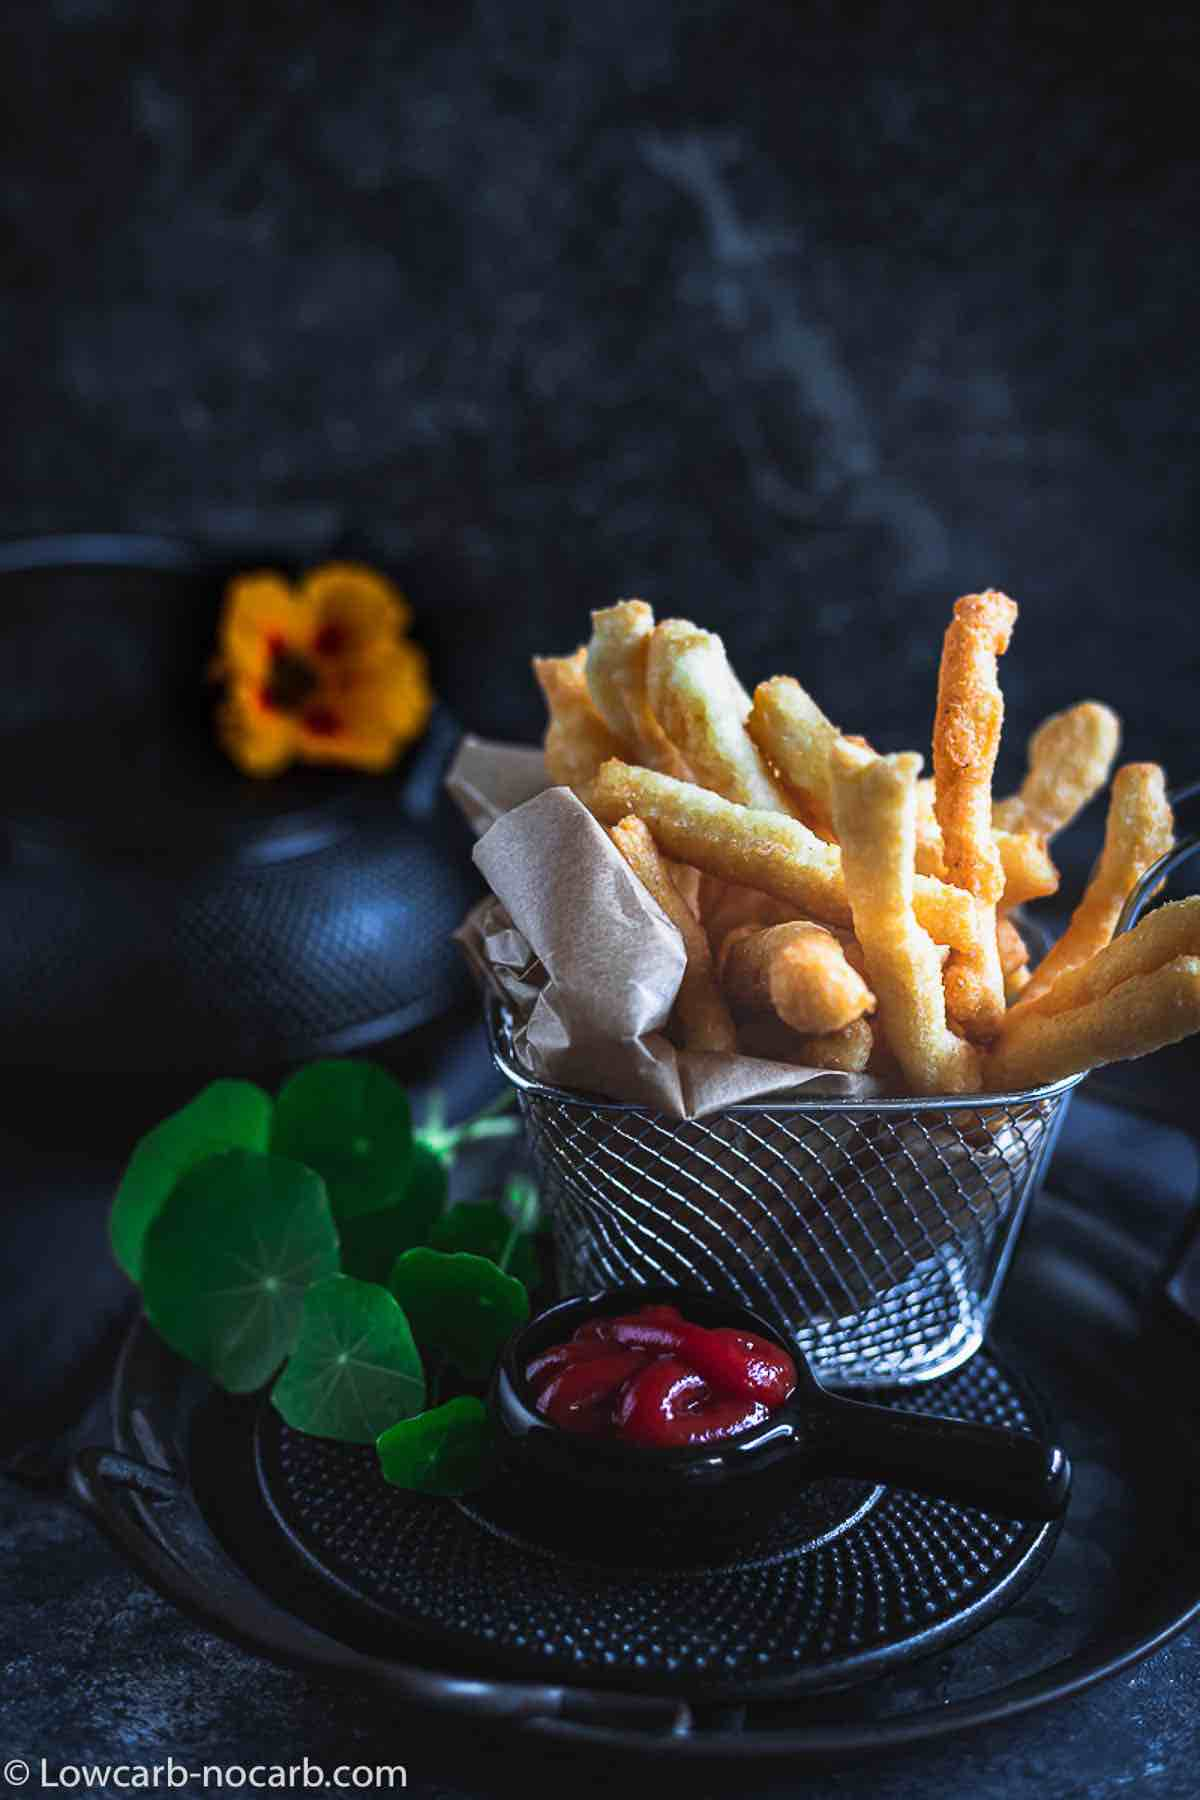 French Fries with minimum carbs in a metal basket